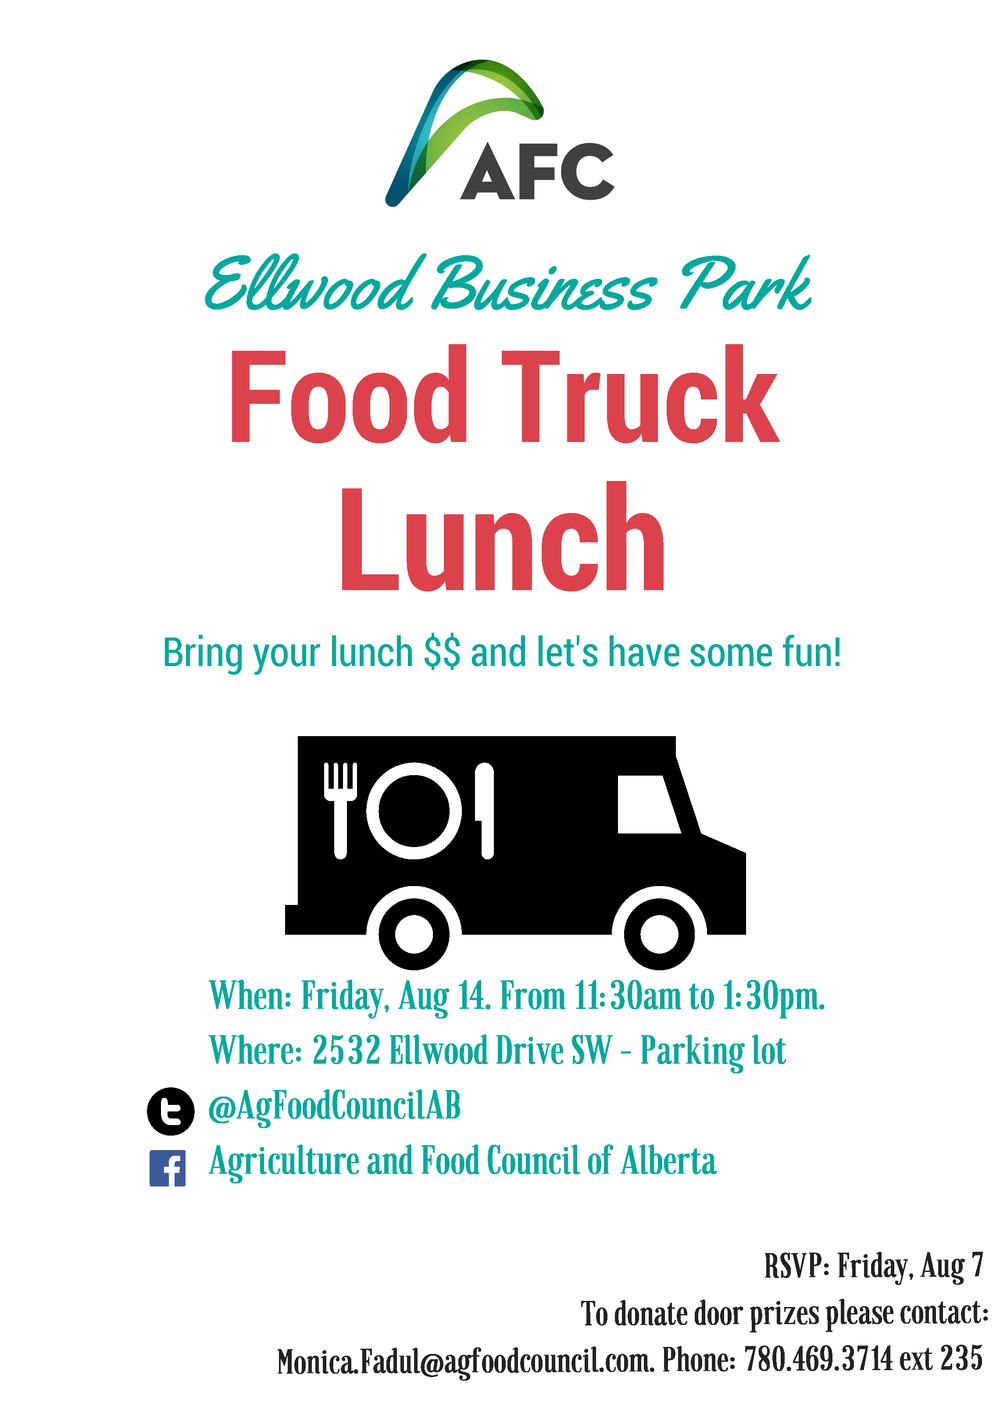 Ellwood Food Truck Lunch